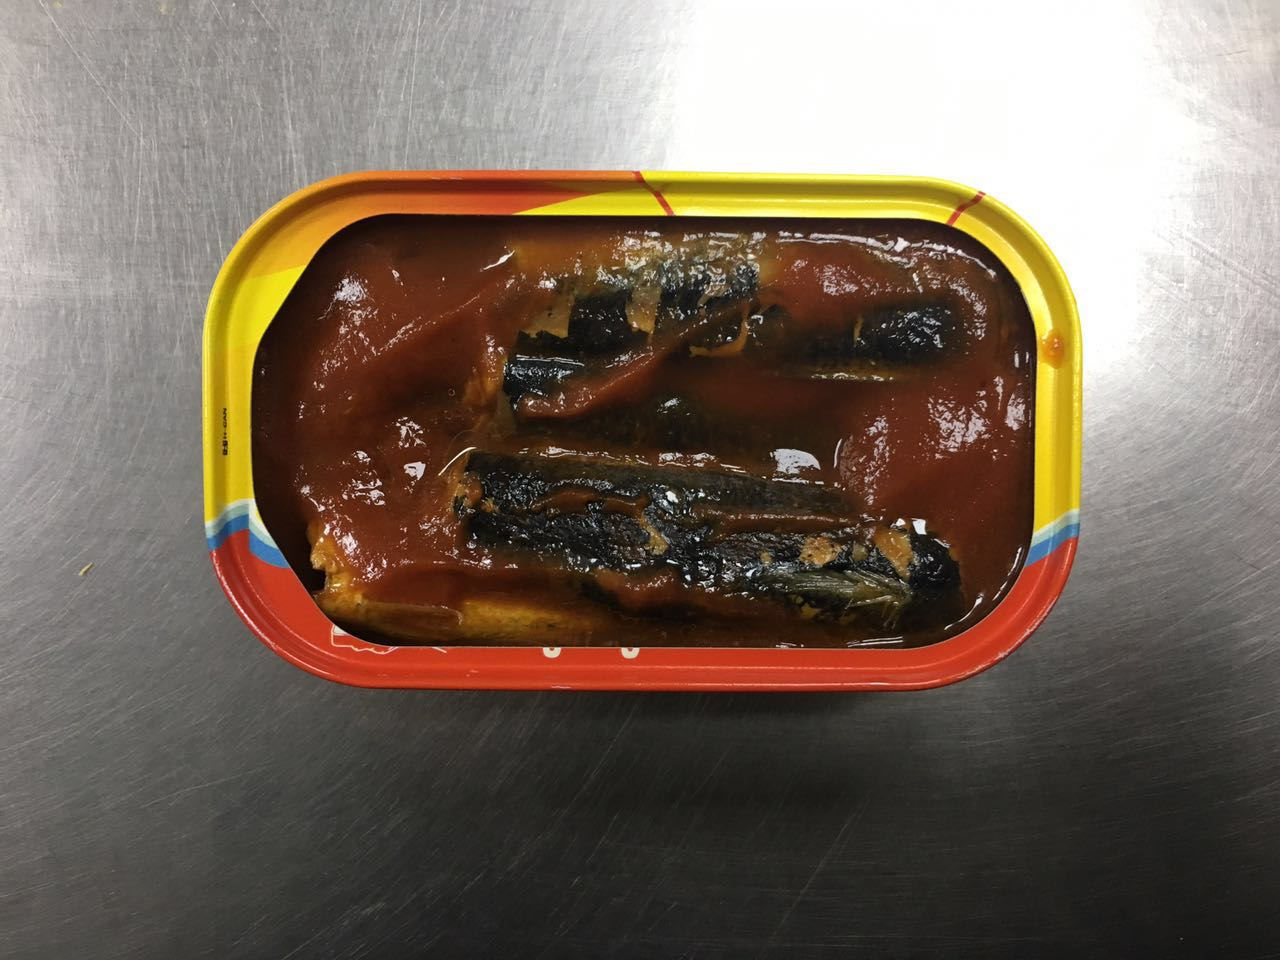 125g canned sardines in tomato sauce